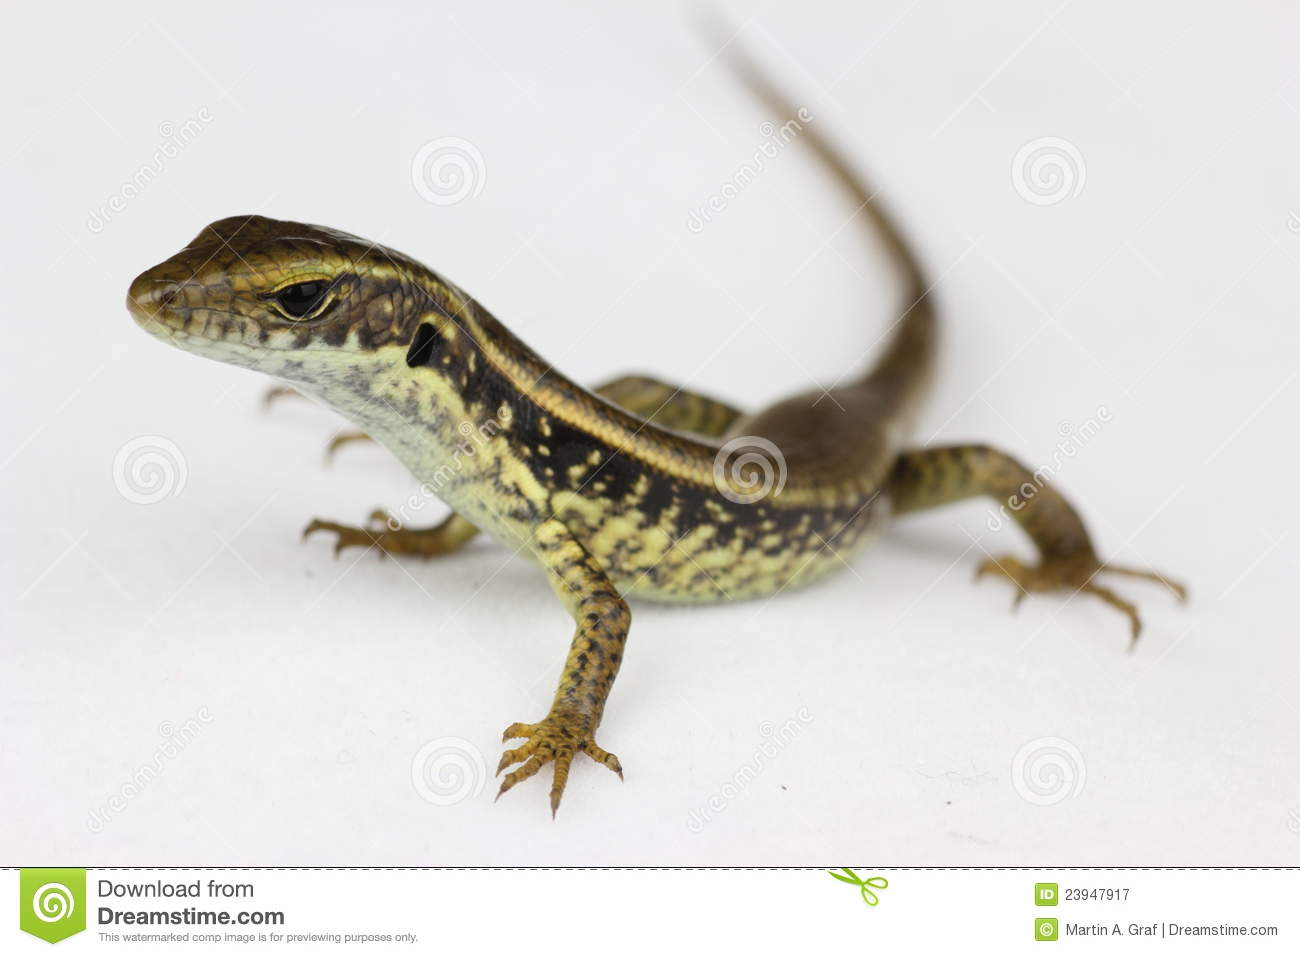 common lizard closeup royalty free stock photography